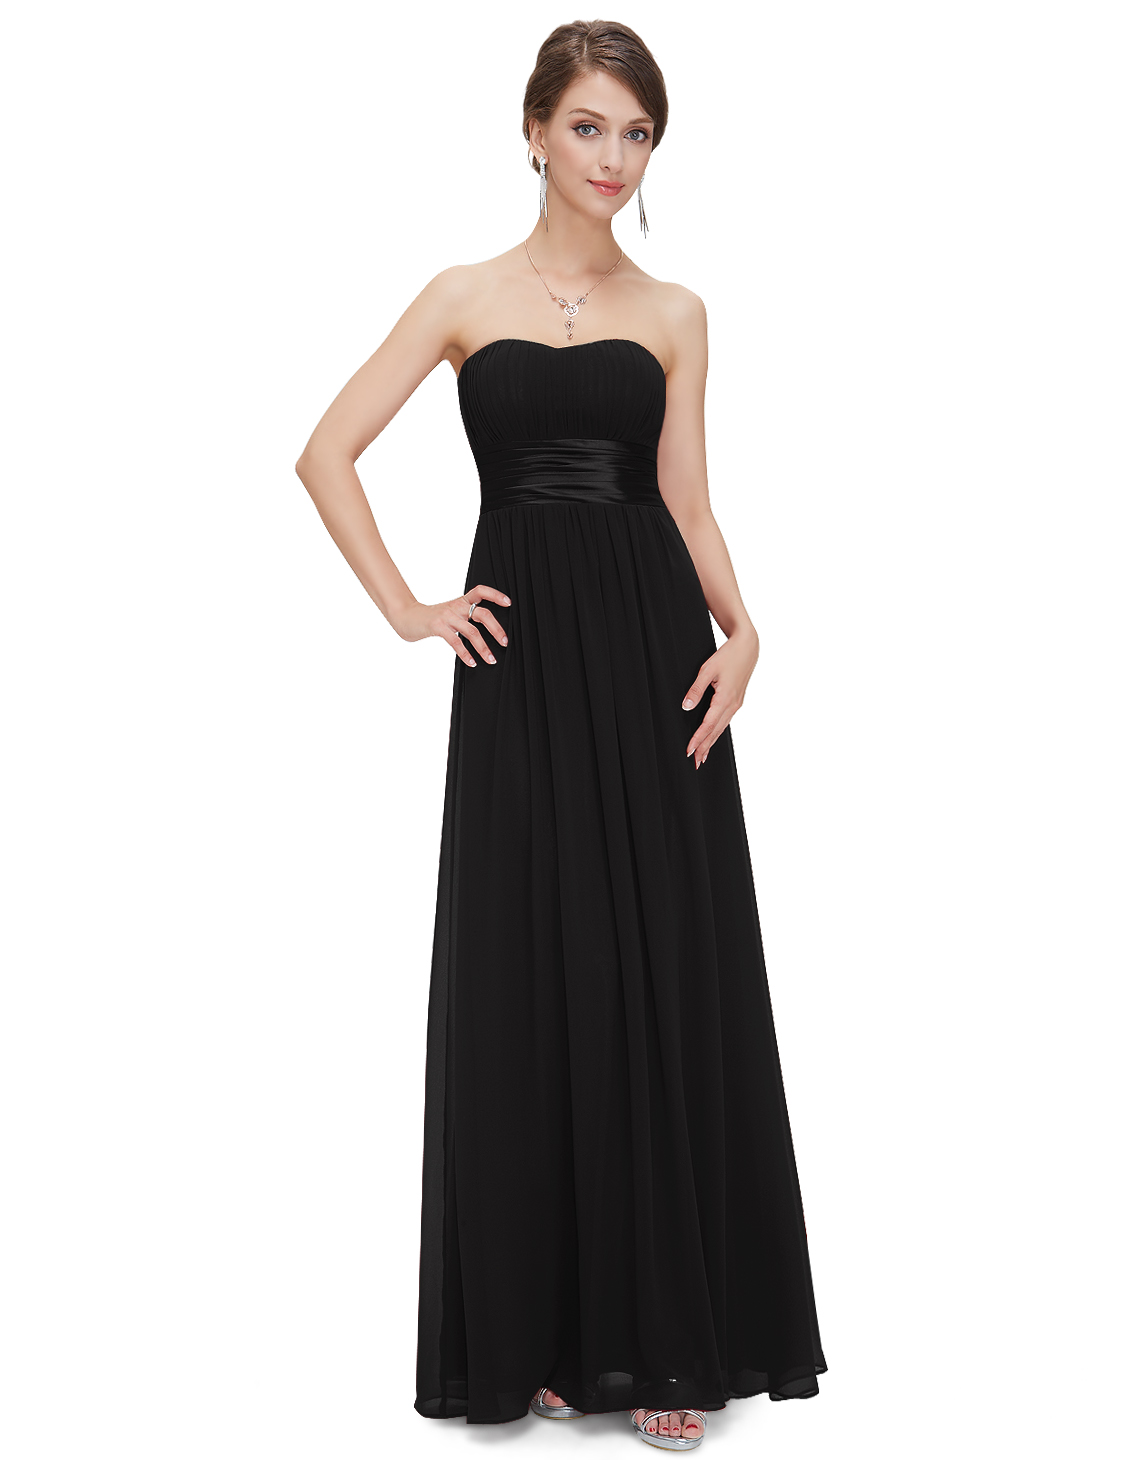 Ever-pretty-Black-Strapless-Long-Prom-Gown-Formal-Evening-Party-Dresses-09955